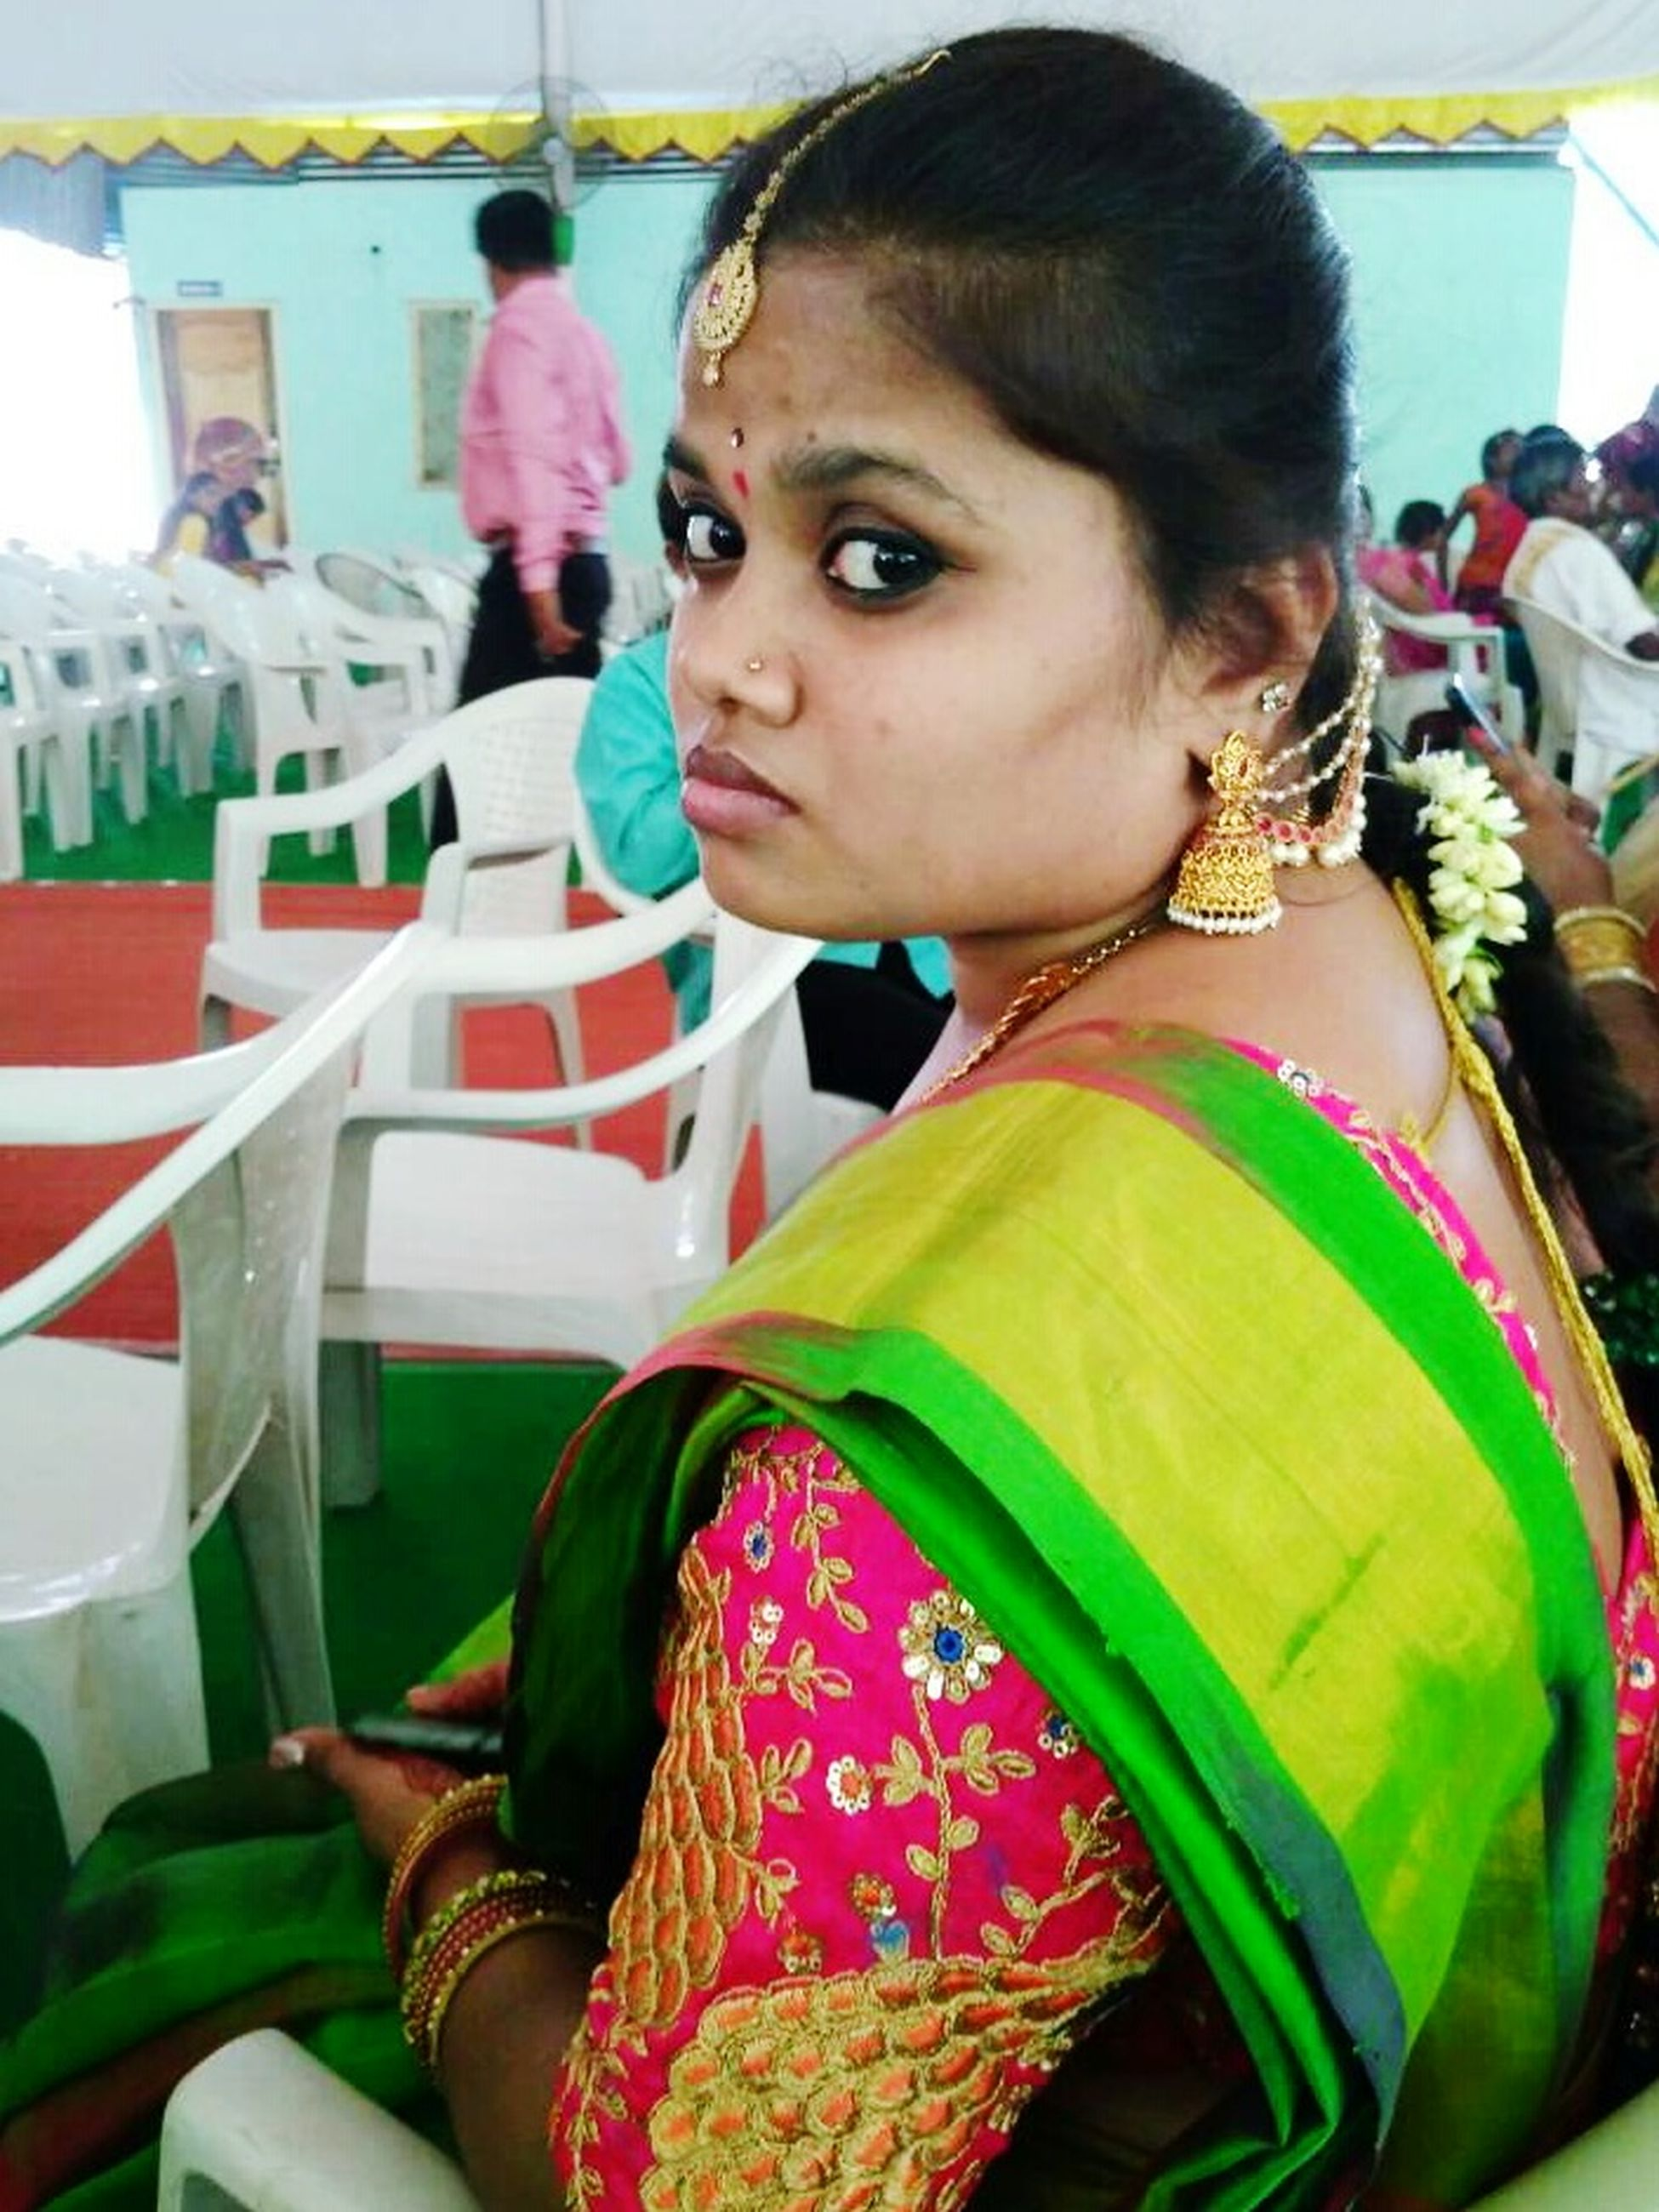 traditional clothing, incidental people, real people, one person, focus on foreground, beautiful woman, sari, young adult, fashion, lifestyles, side view, looking at camera, portrait, young women, day, indoors, close-up, people, adult